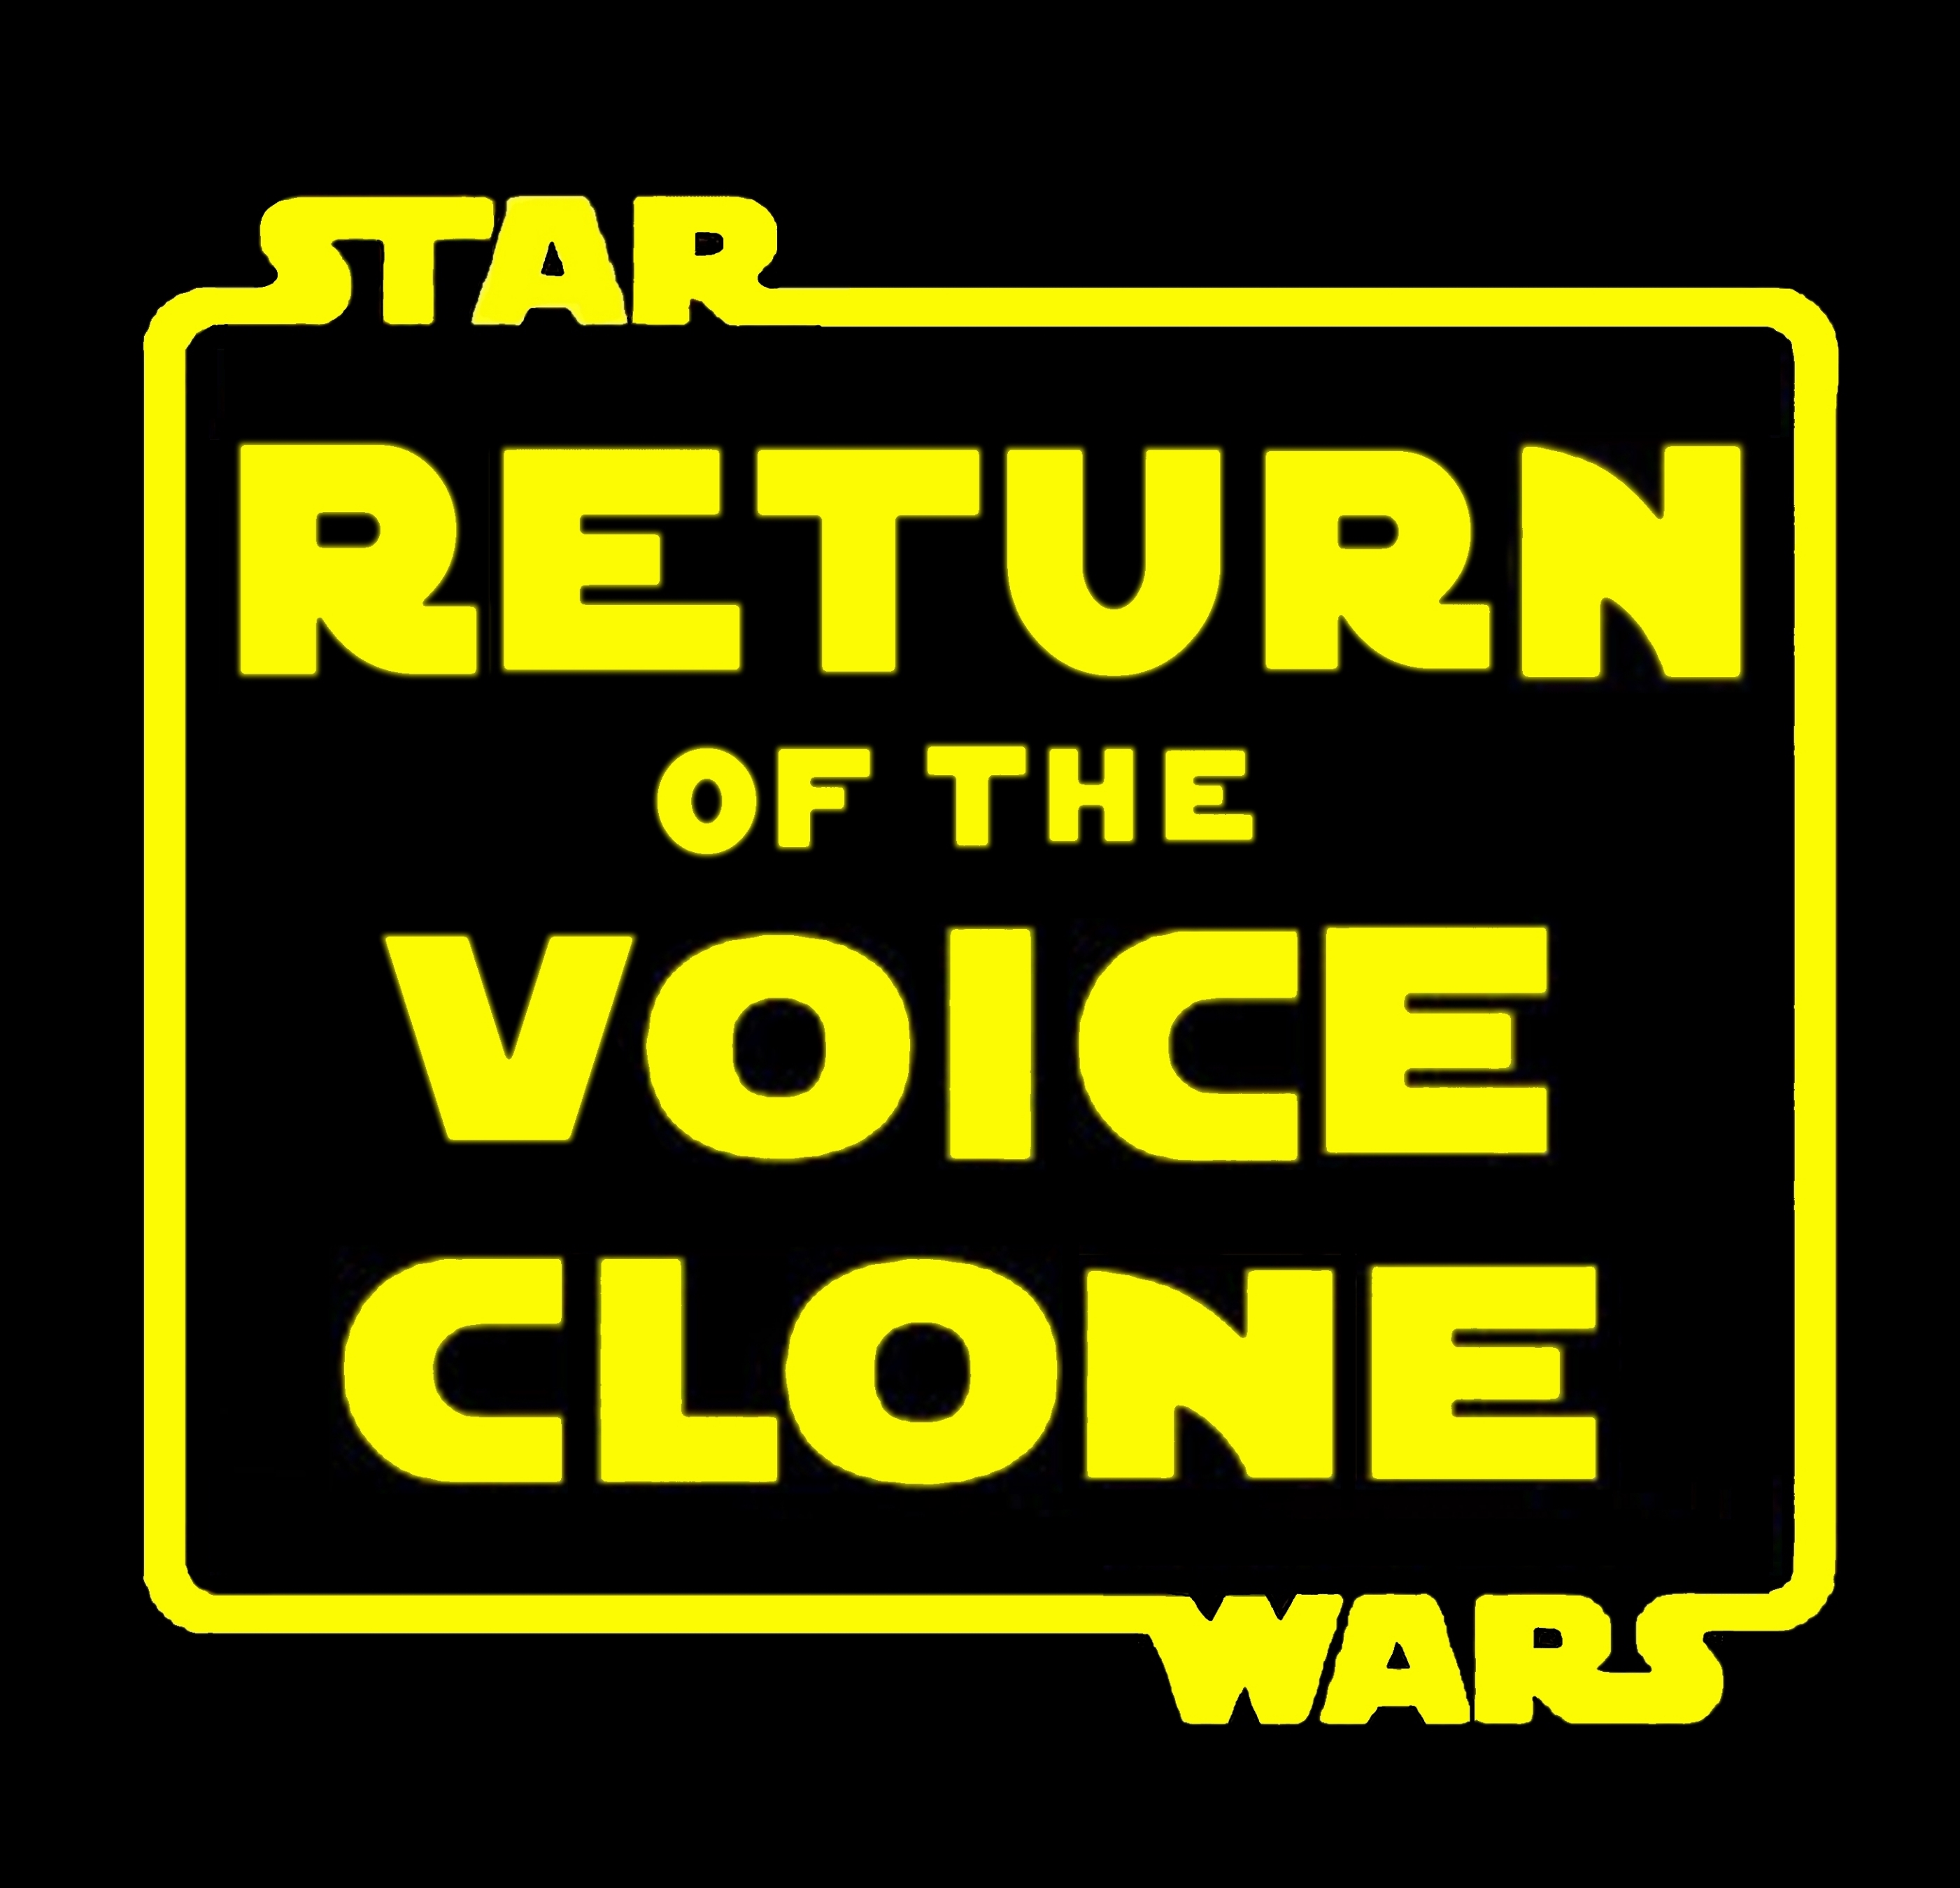 STAR WARS: Return of the Voice Clone